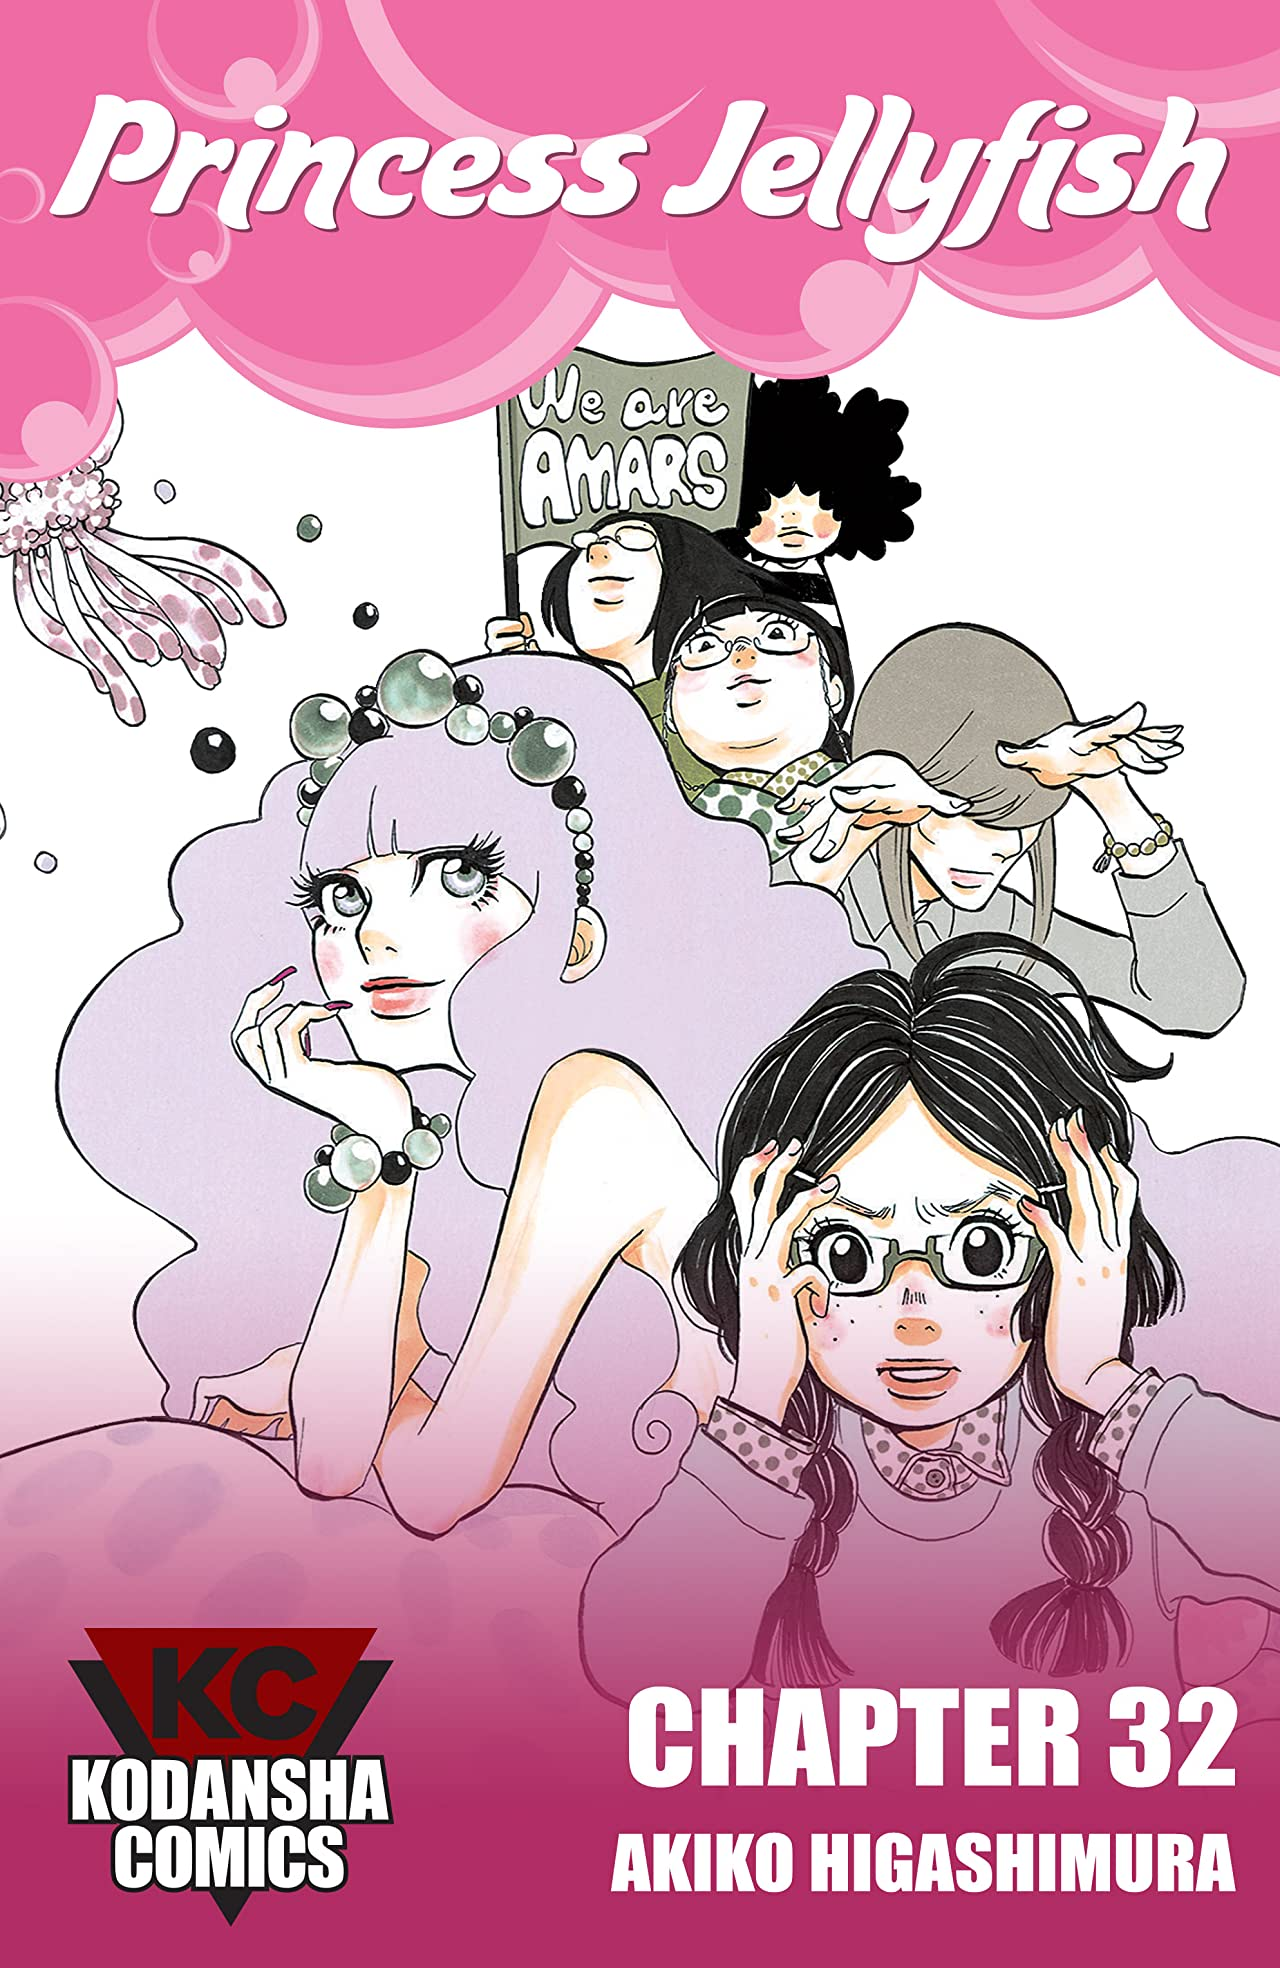 Princess Jellyfish #32